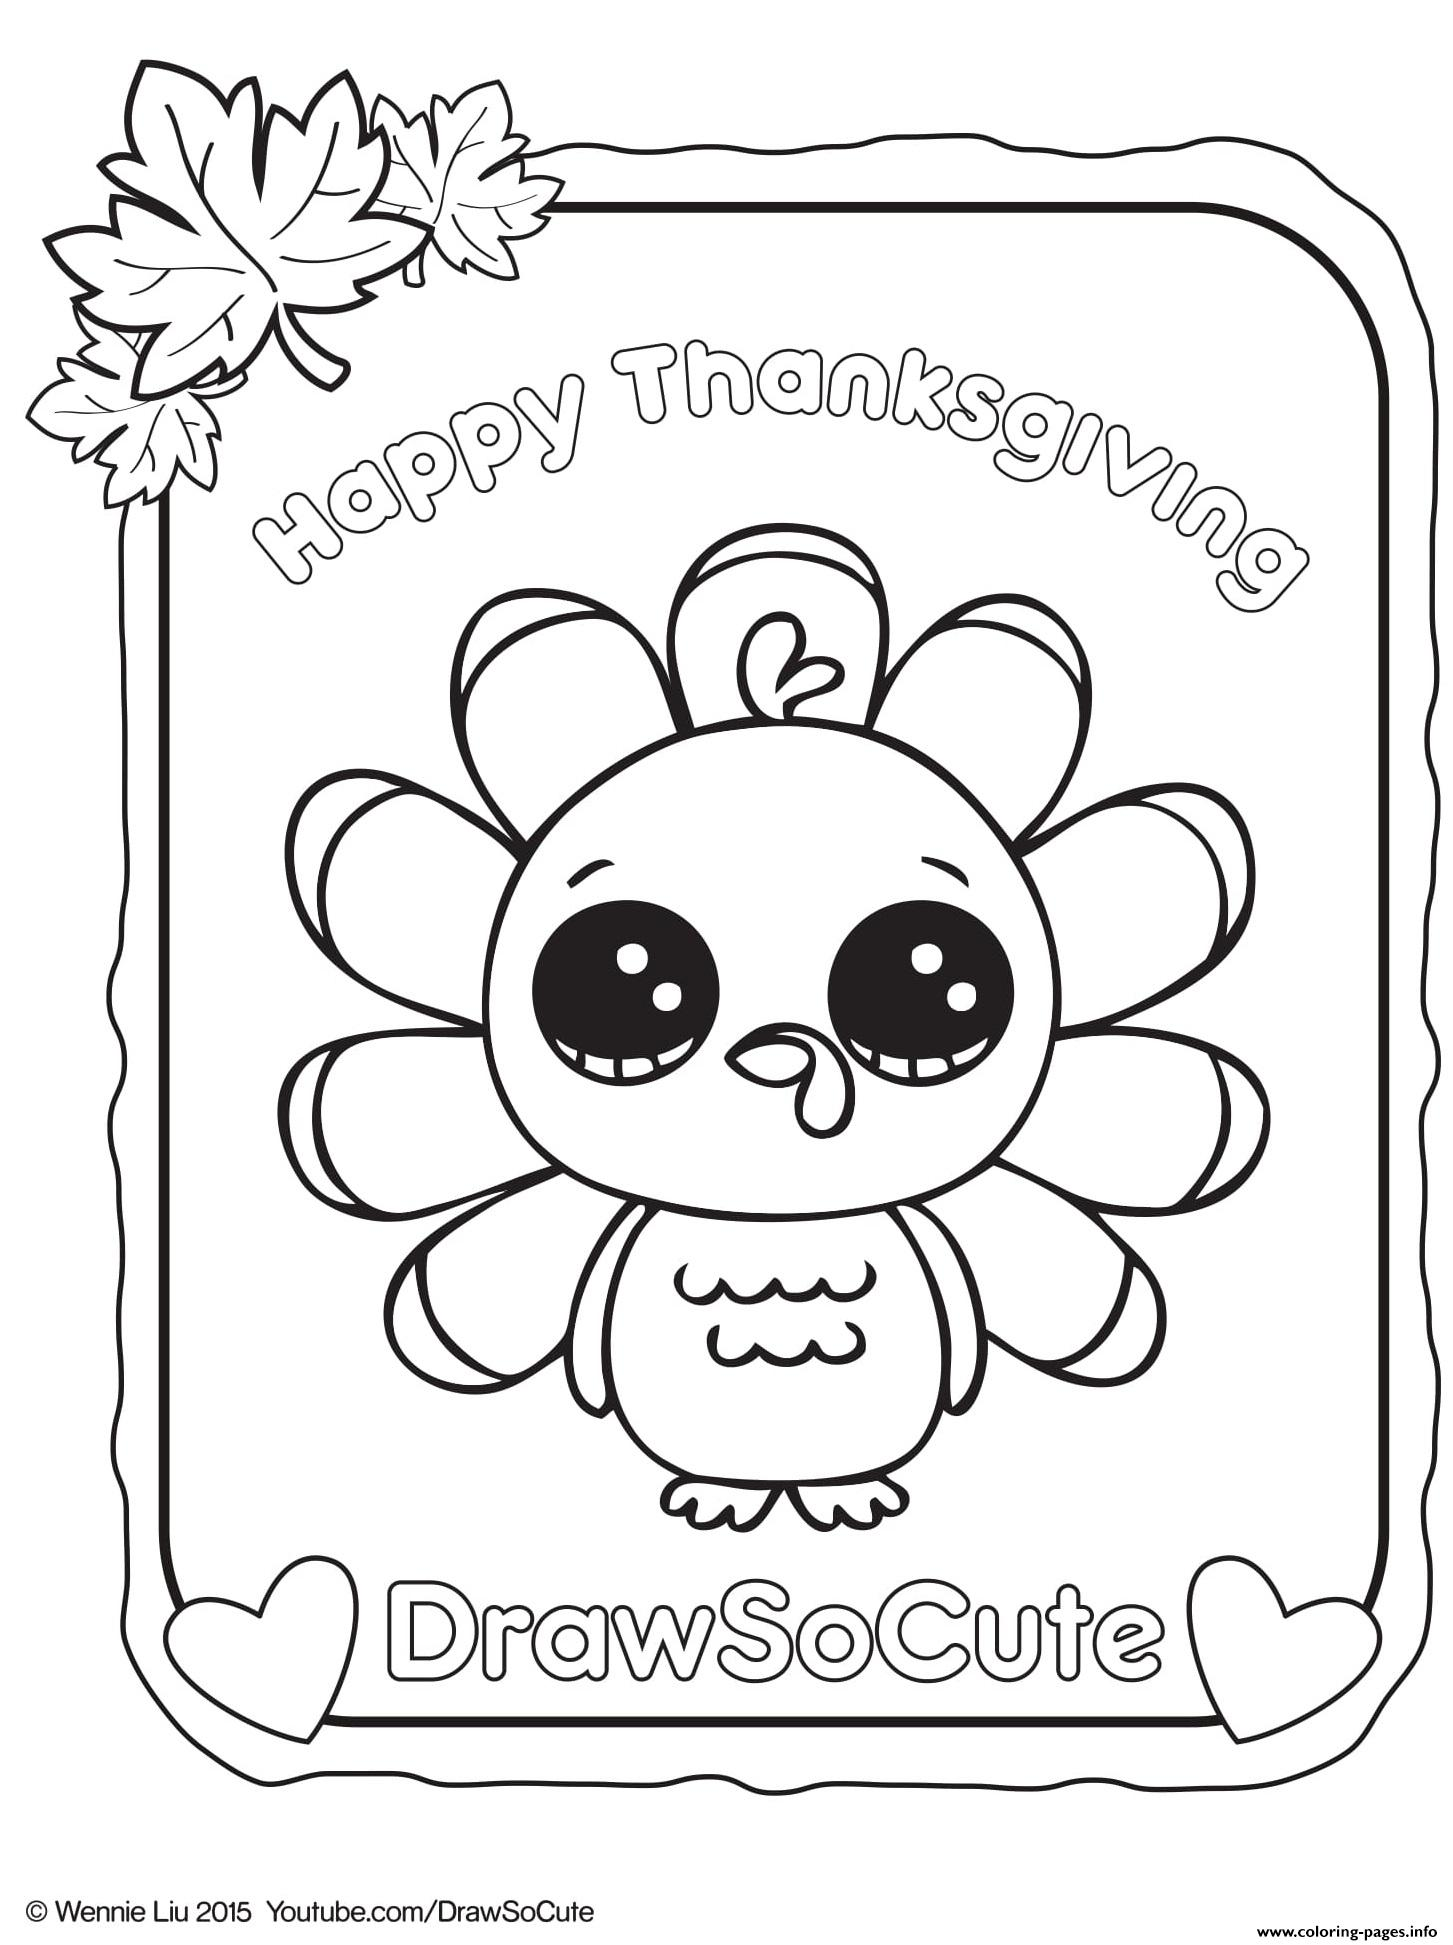 Cute Drawing Pics at GetDrawings.com | Free for personal use Cute ...